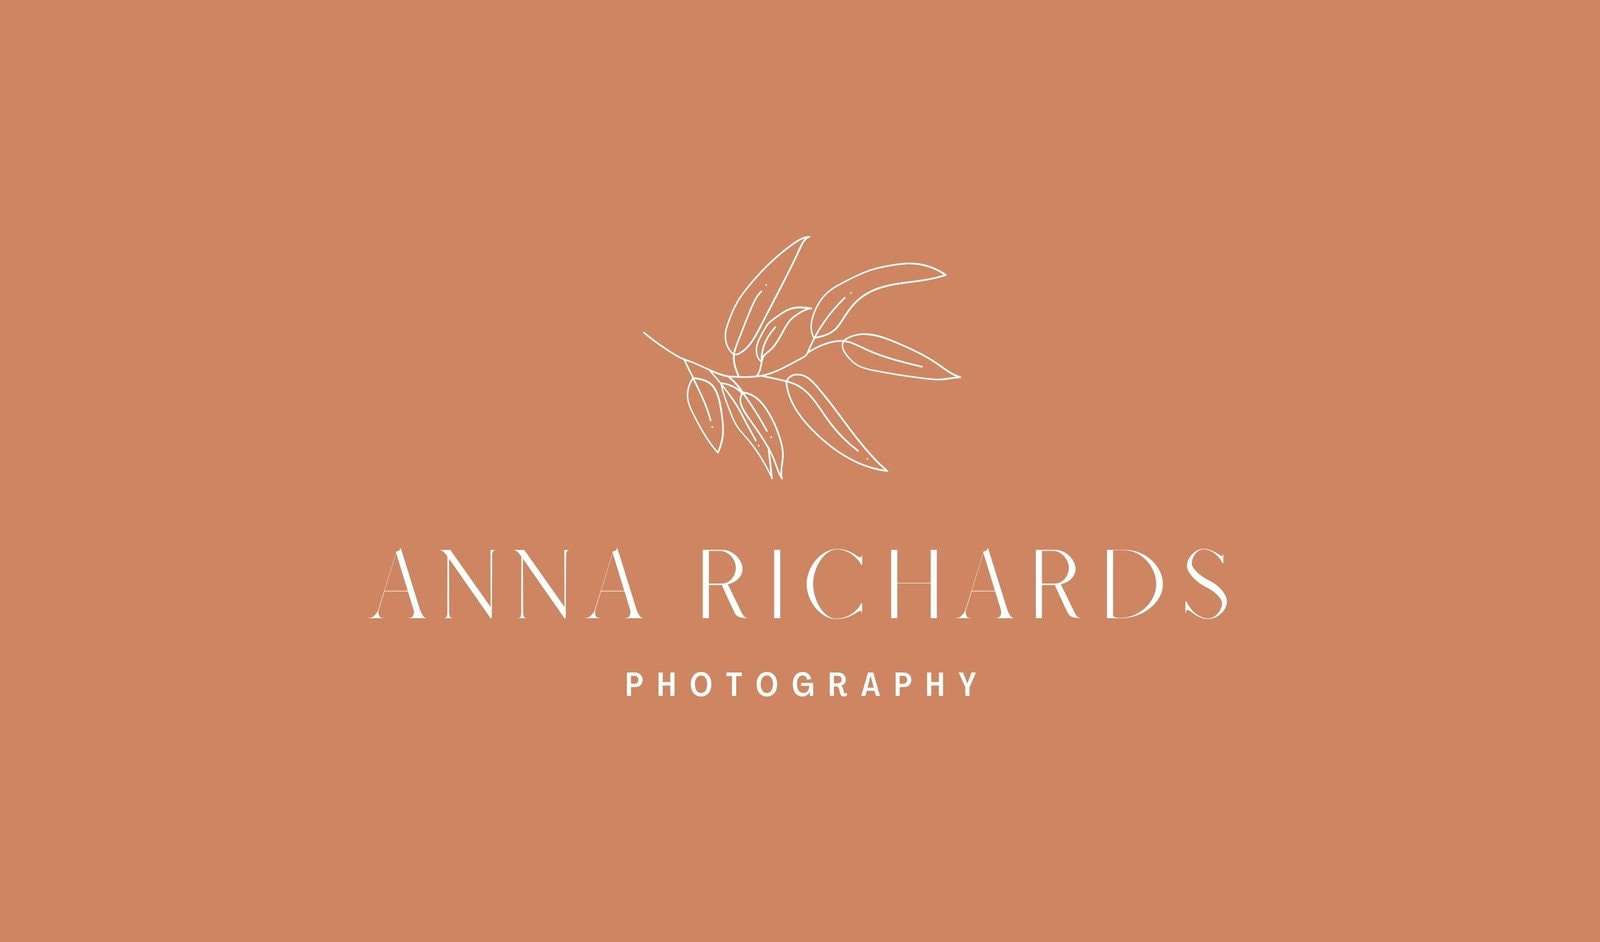 Aesthetic Chic Business Card Design